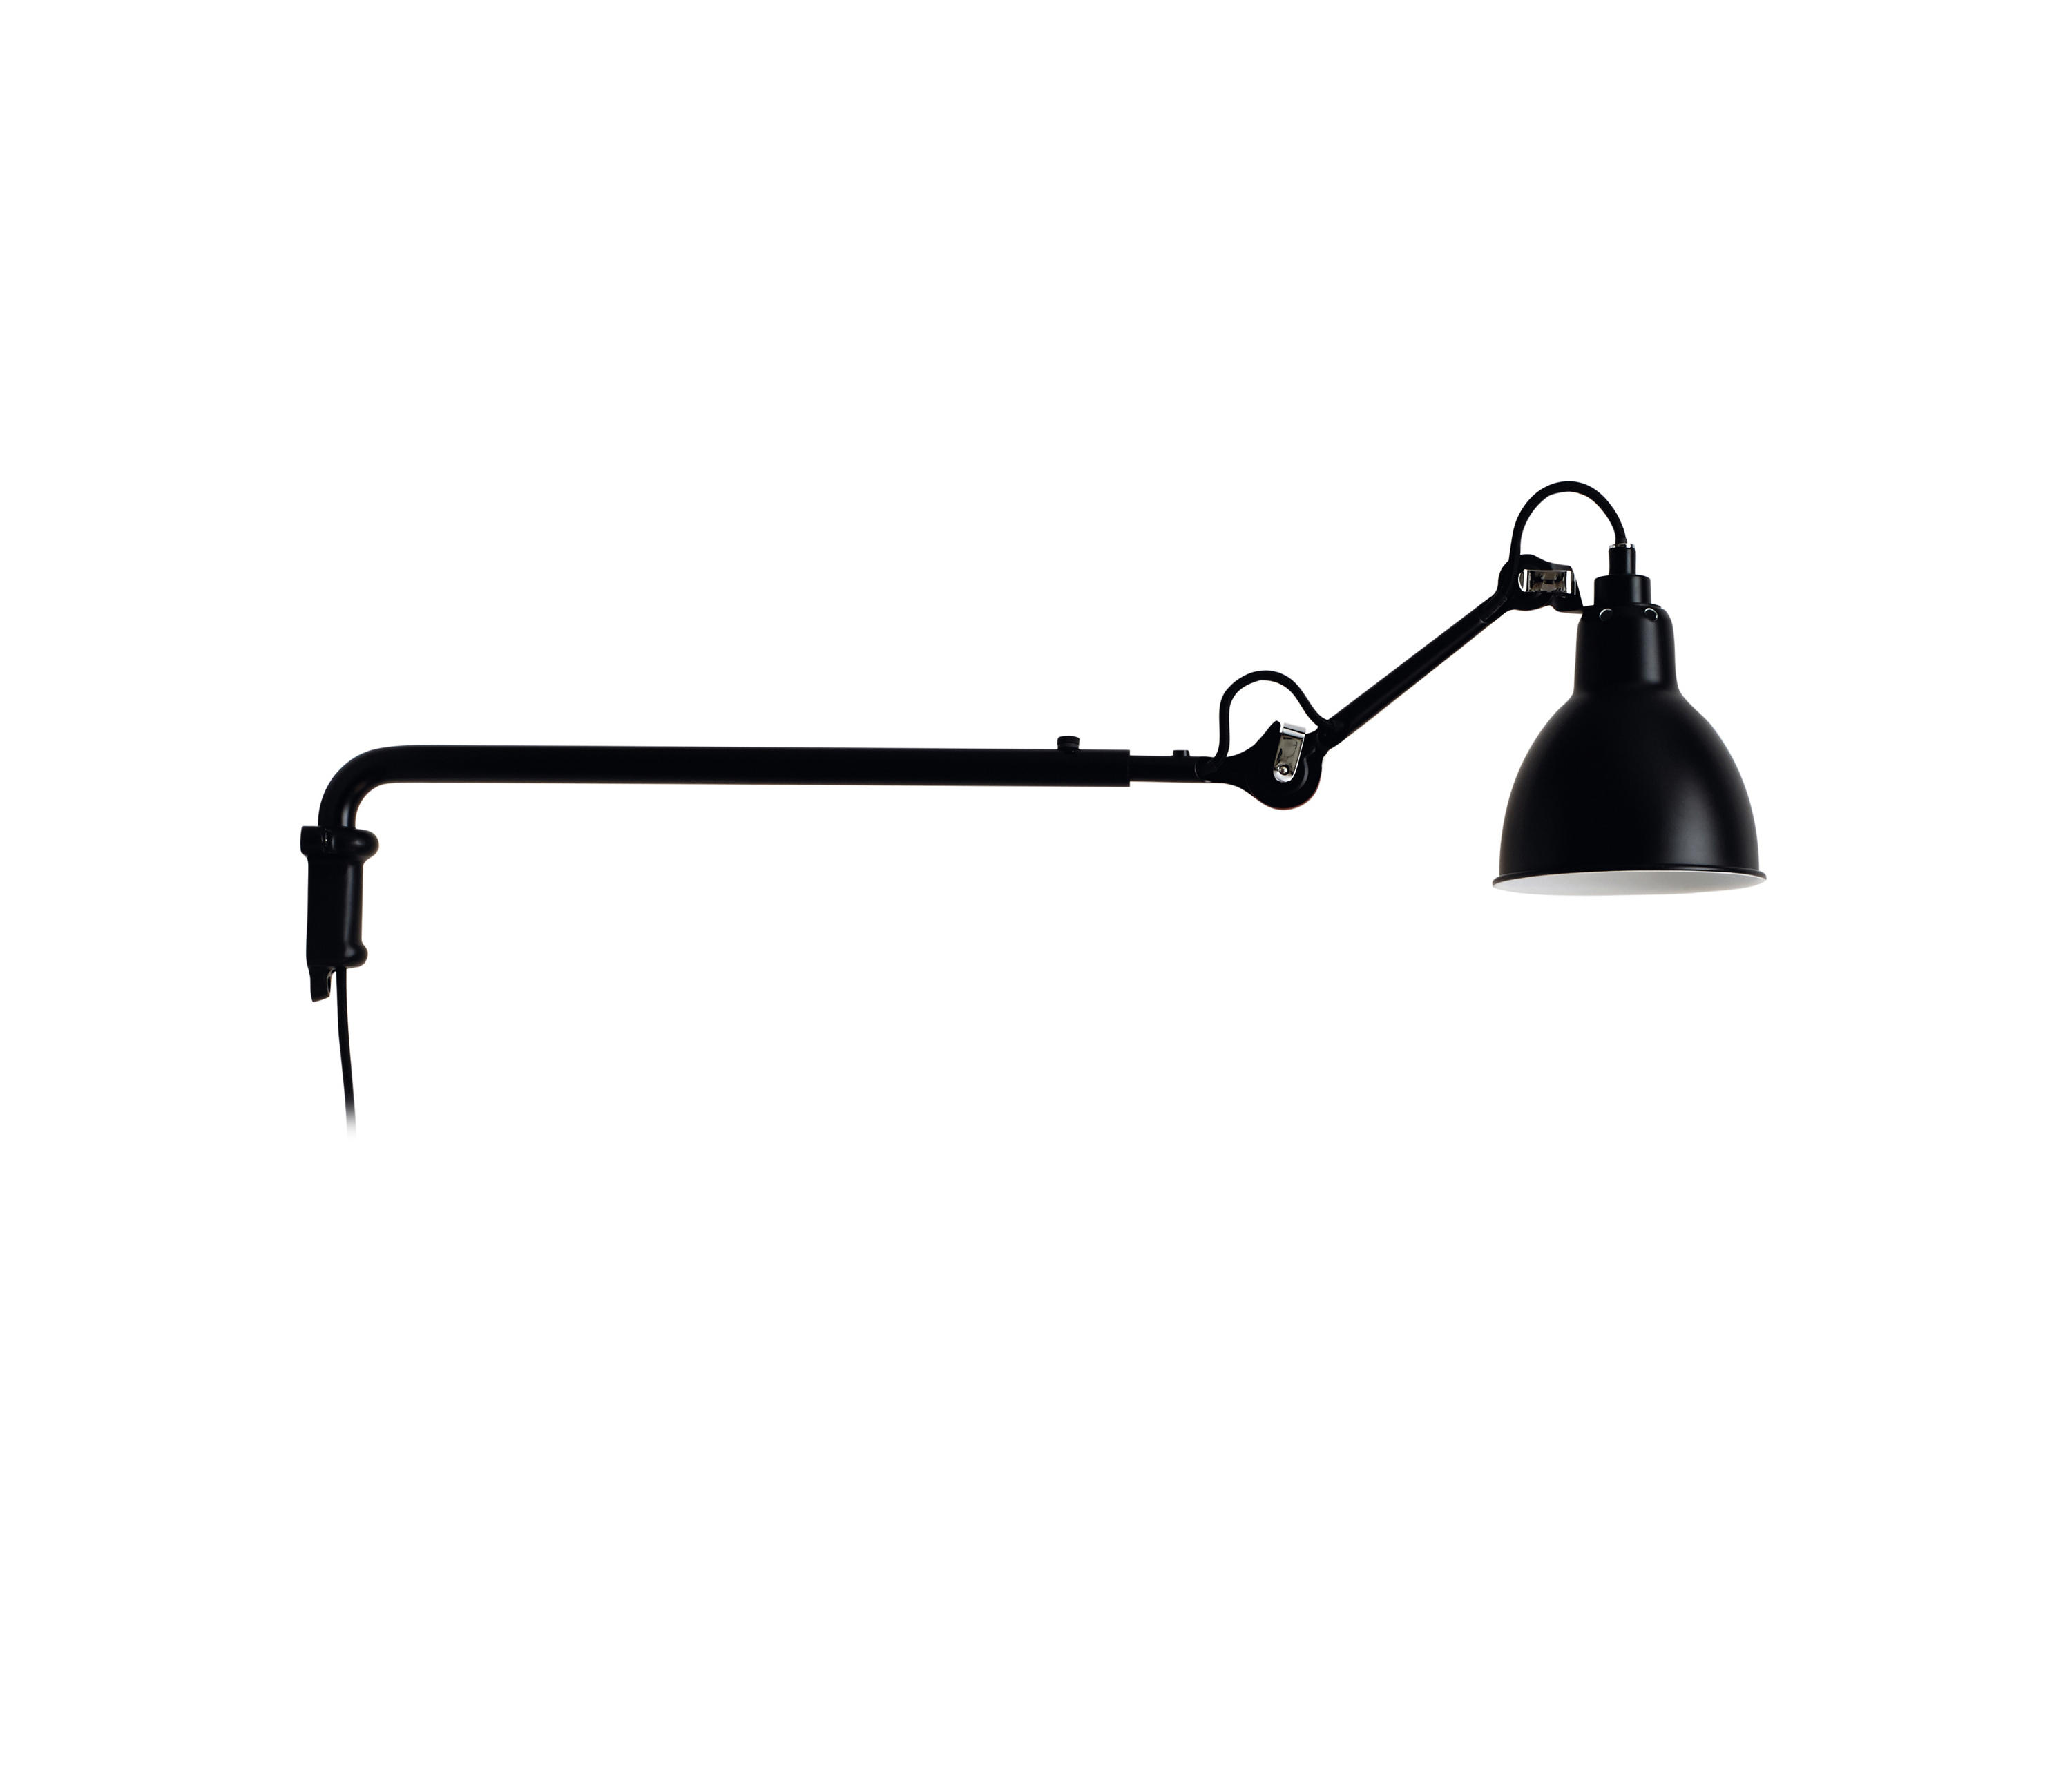 lampe gras n 203 black general lighting from dcw. Black Bedroom Furniture Sets. Home Design Ideas